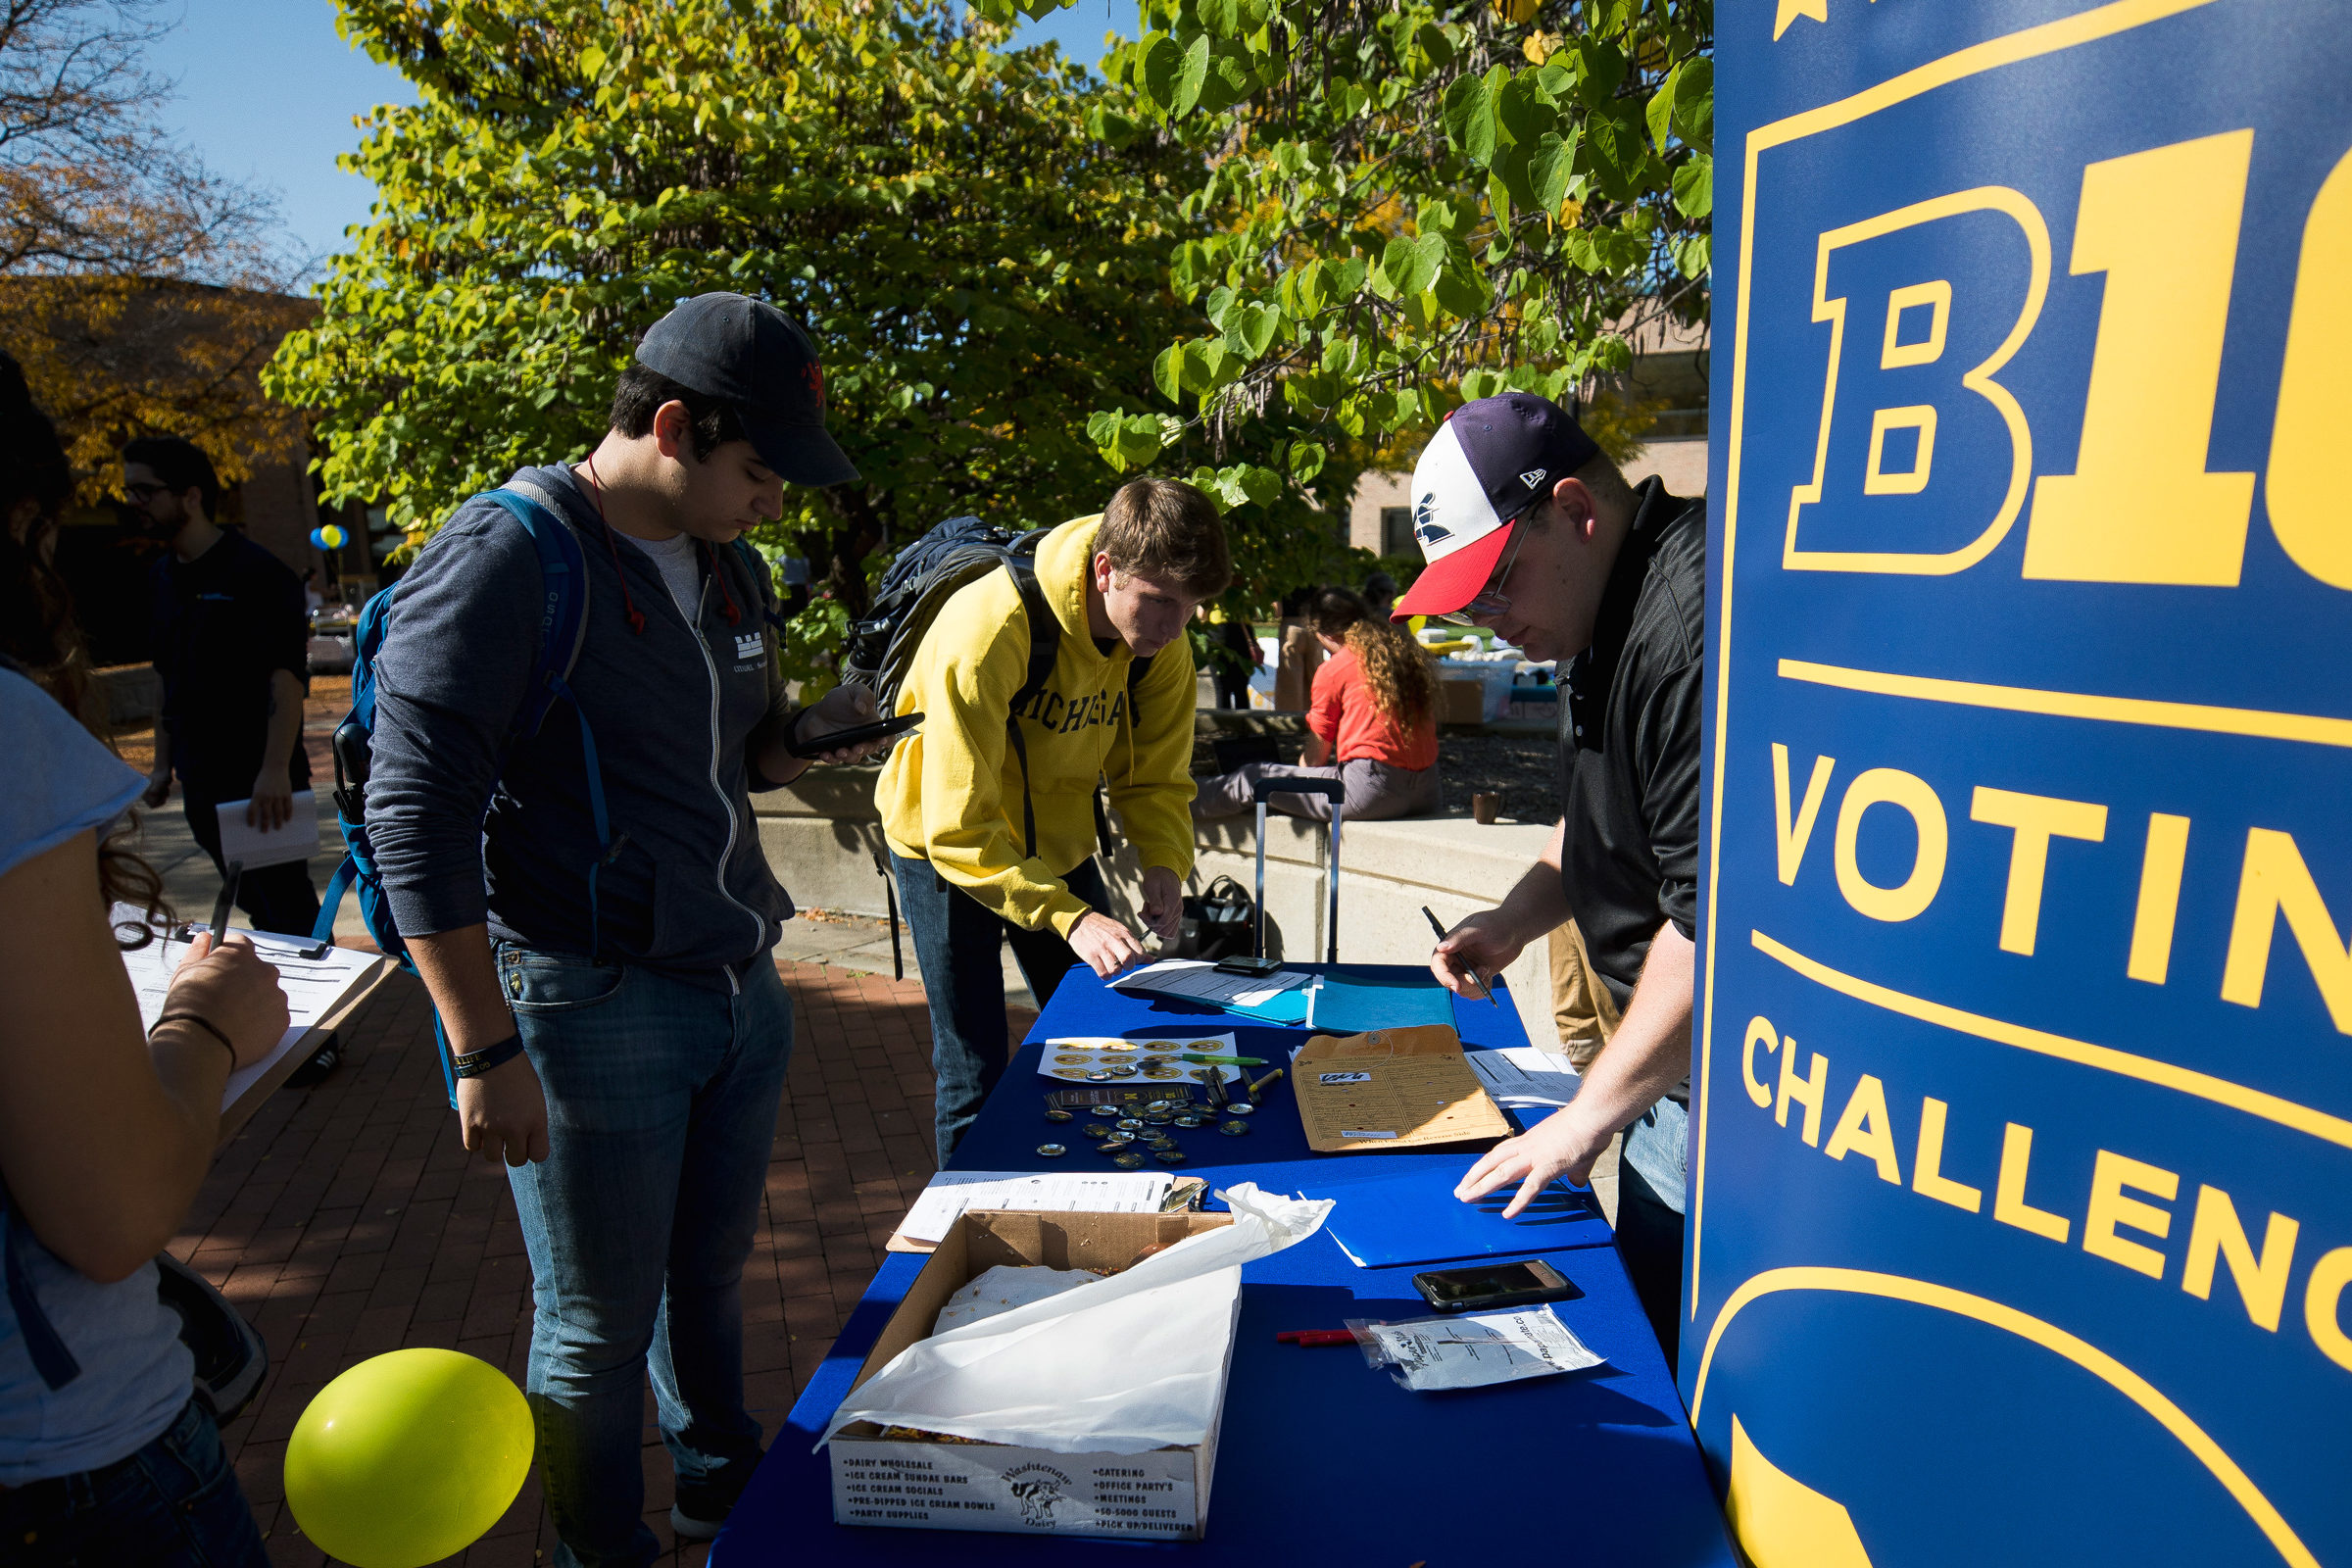 Students register to vote at the impactXchange on North Campus of the University of Michigan. Photo: Joseph Xu